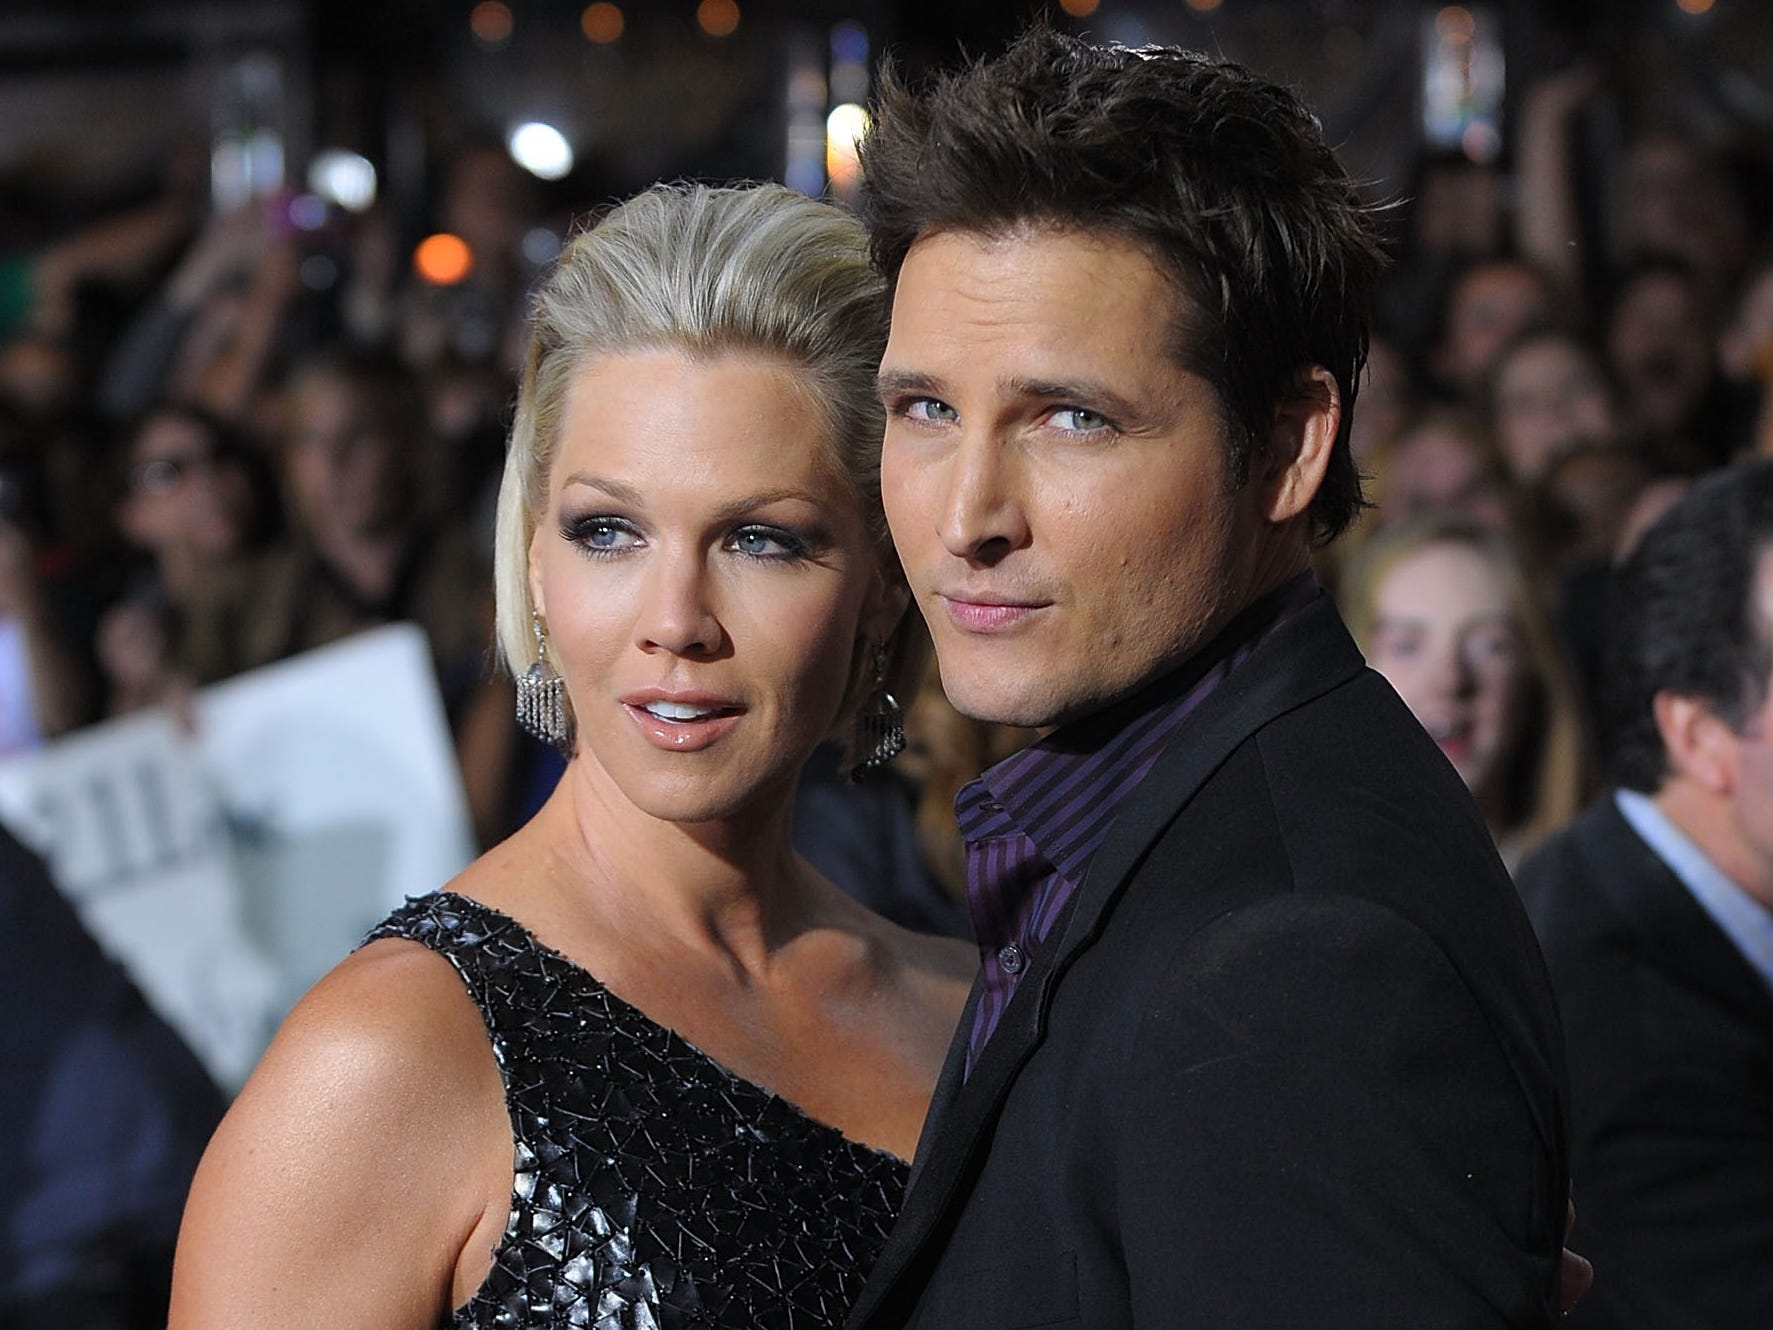 WESTWOOD, CA - NOVEMBER 16:  Actors Jennie Garth and Peter Facinelli  arrive at the Los Angeles premiere of Summit Entertainment's 'The Twilight Saga: New Moon' at Mann Westwood on November 16, 2009 in Westwood, California.  (Photo by Jason Merritt/Getty Images) ORG XMIT: 92116469 GTY ID: 16469JM156_PREMIERE_OF_S